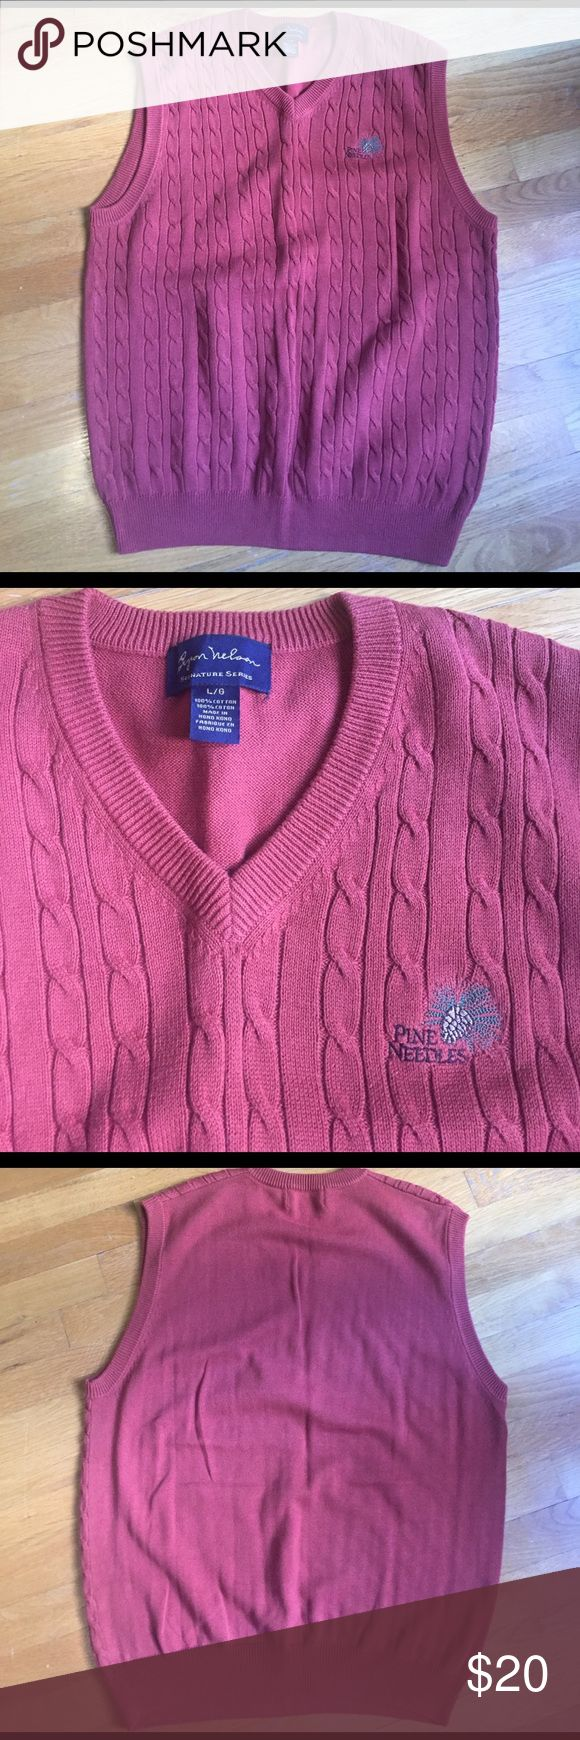 Pine Needles Golf Sweater Vest EUC Great condition Byron Nelson golf sweater dress.  Color is a burnt sienna/ dark orange. Byron Nelson Sweaters